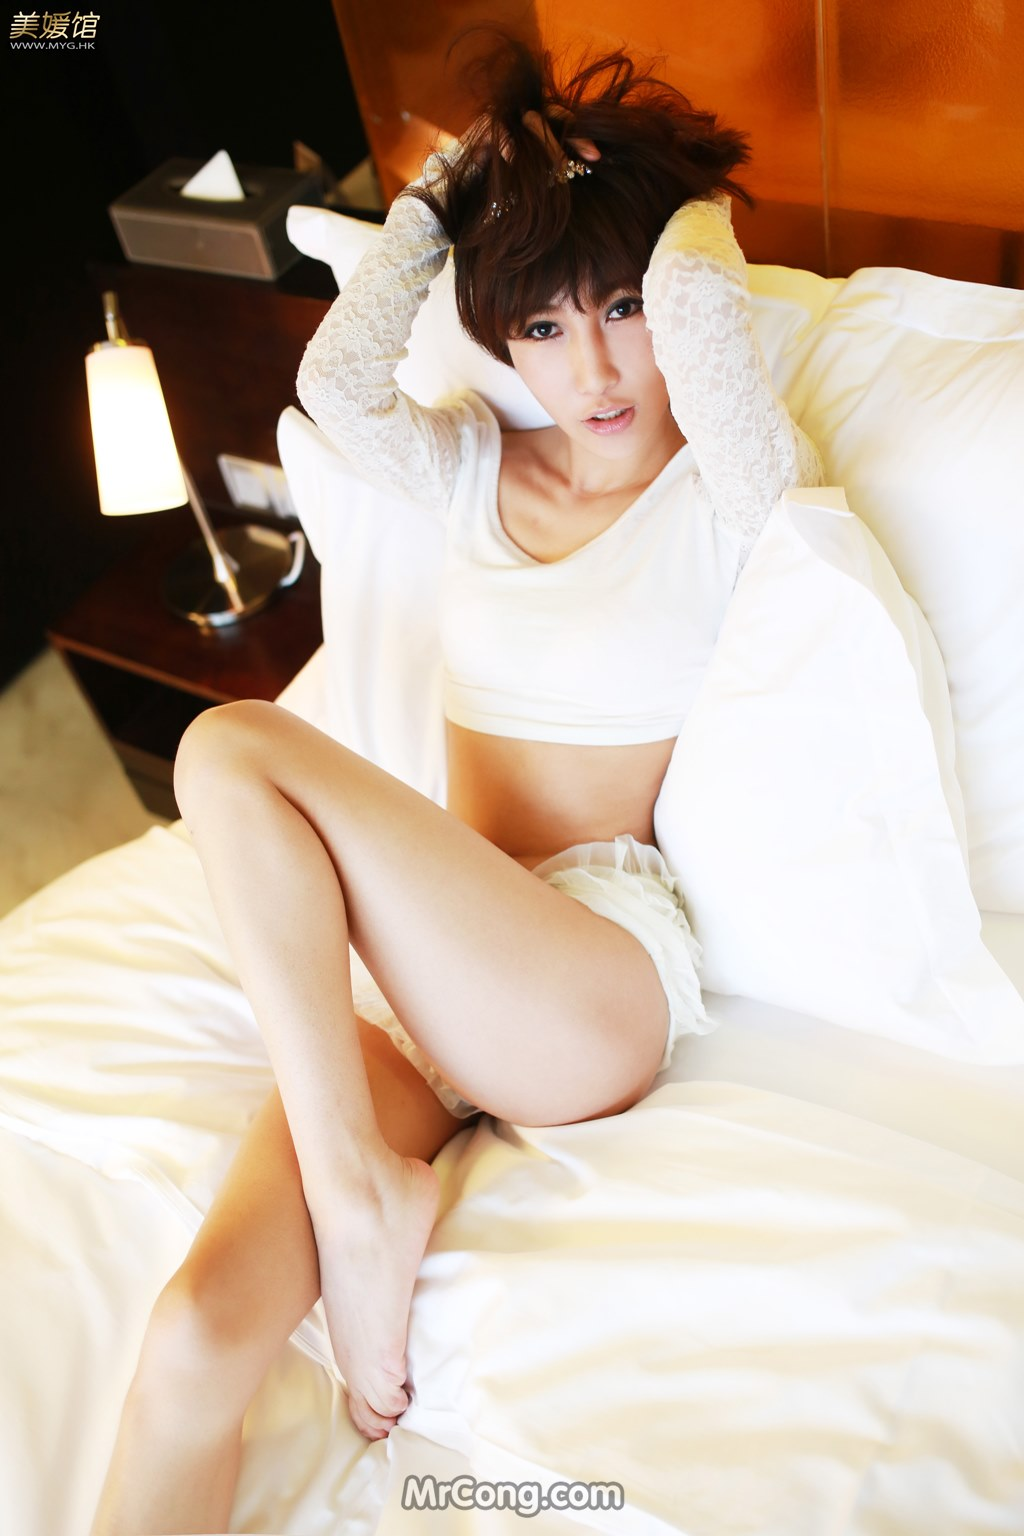 MyGirl No.043: Model Zhang Zi Yuan (张梓瑗) (35P)